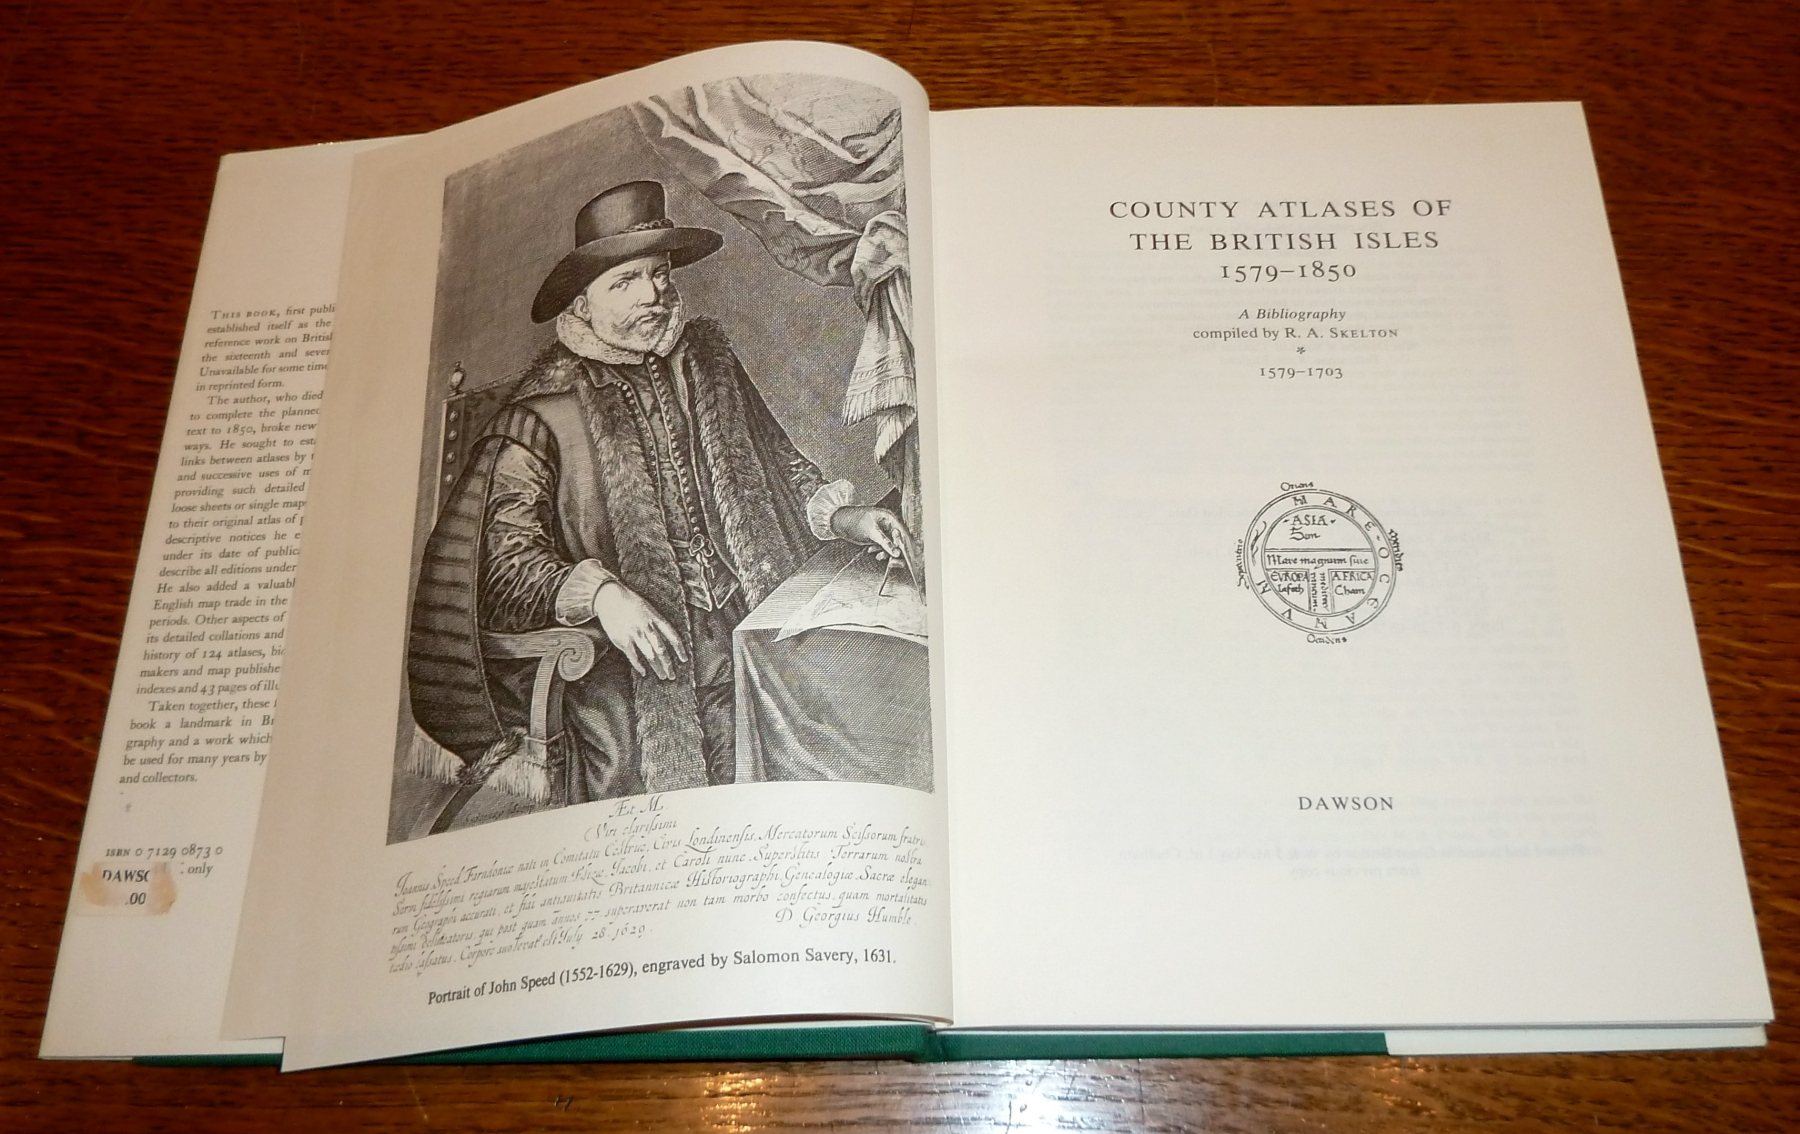 County Atlases of the British Isles 1579-1703